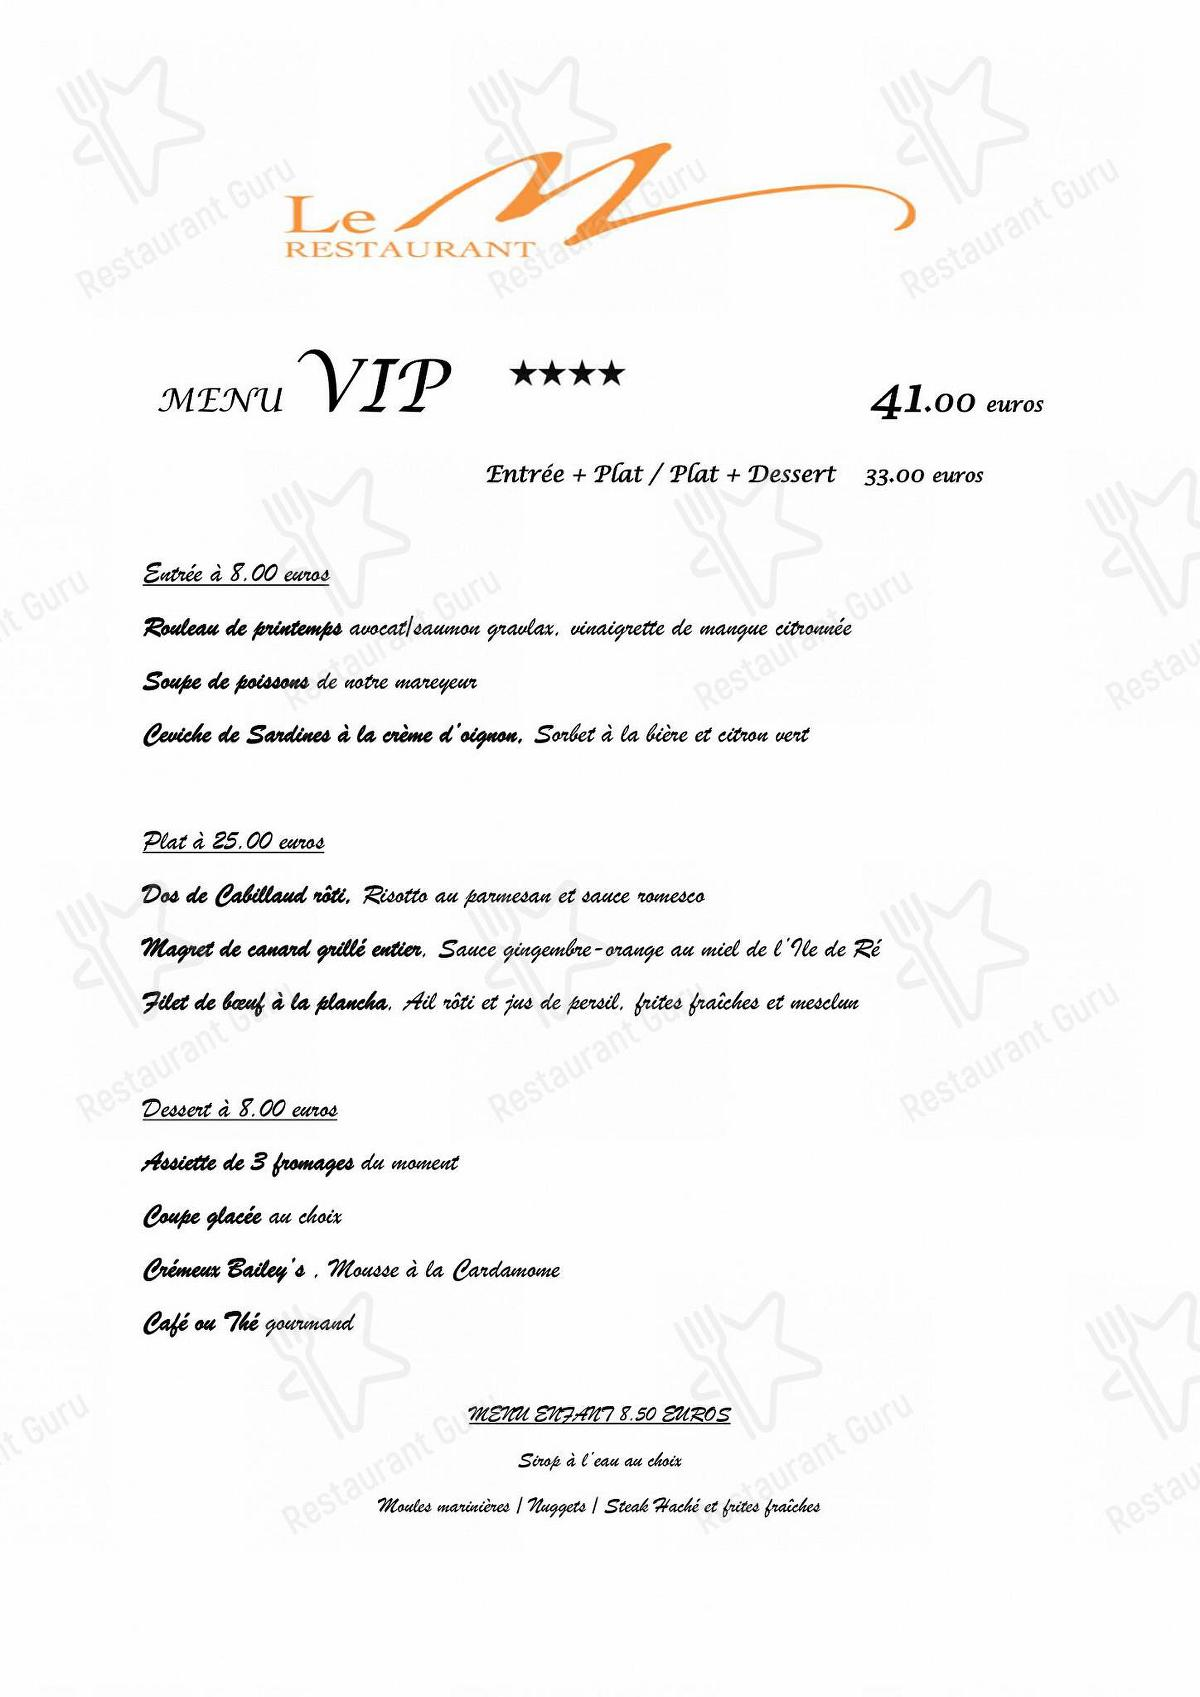 Le M menu - meals and drinks